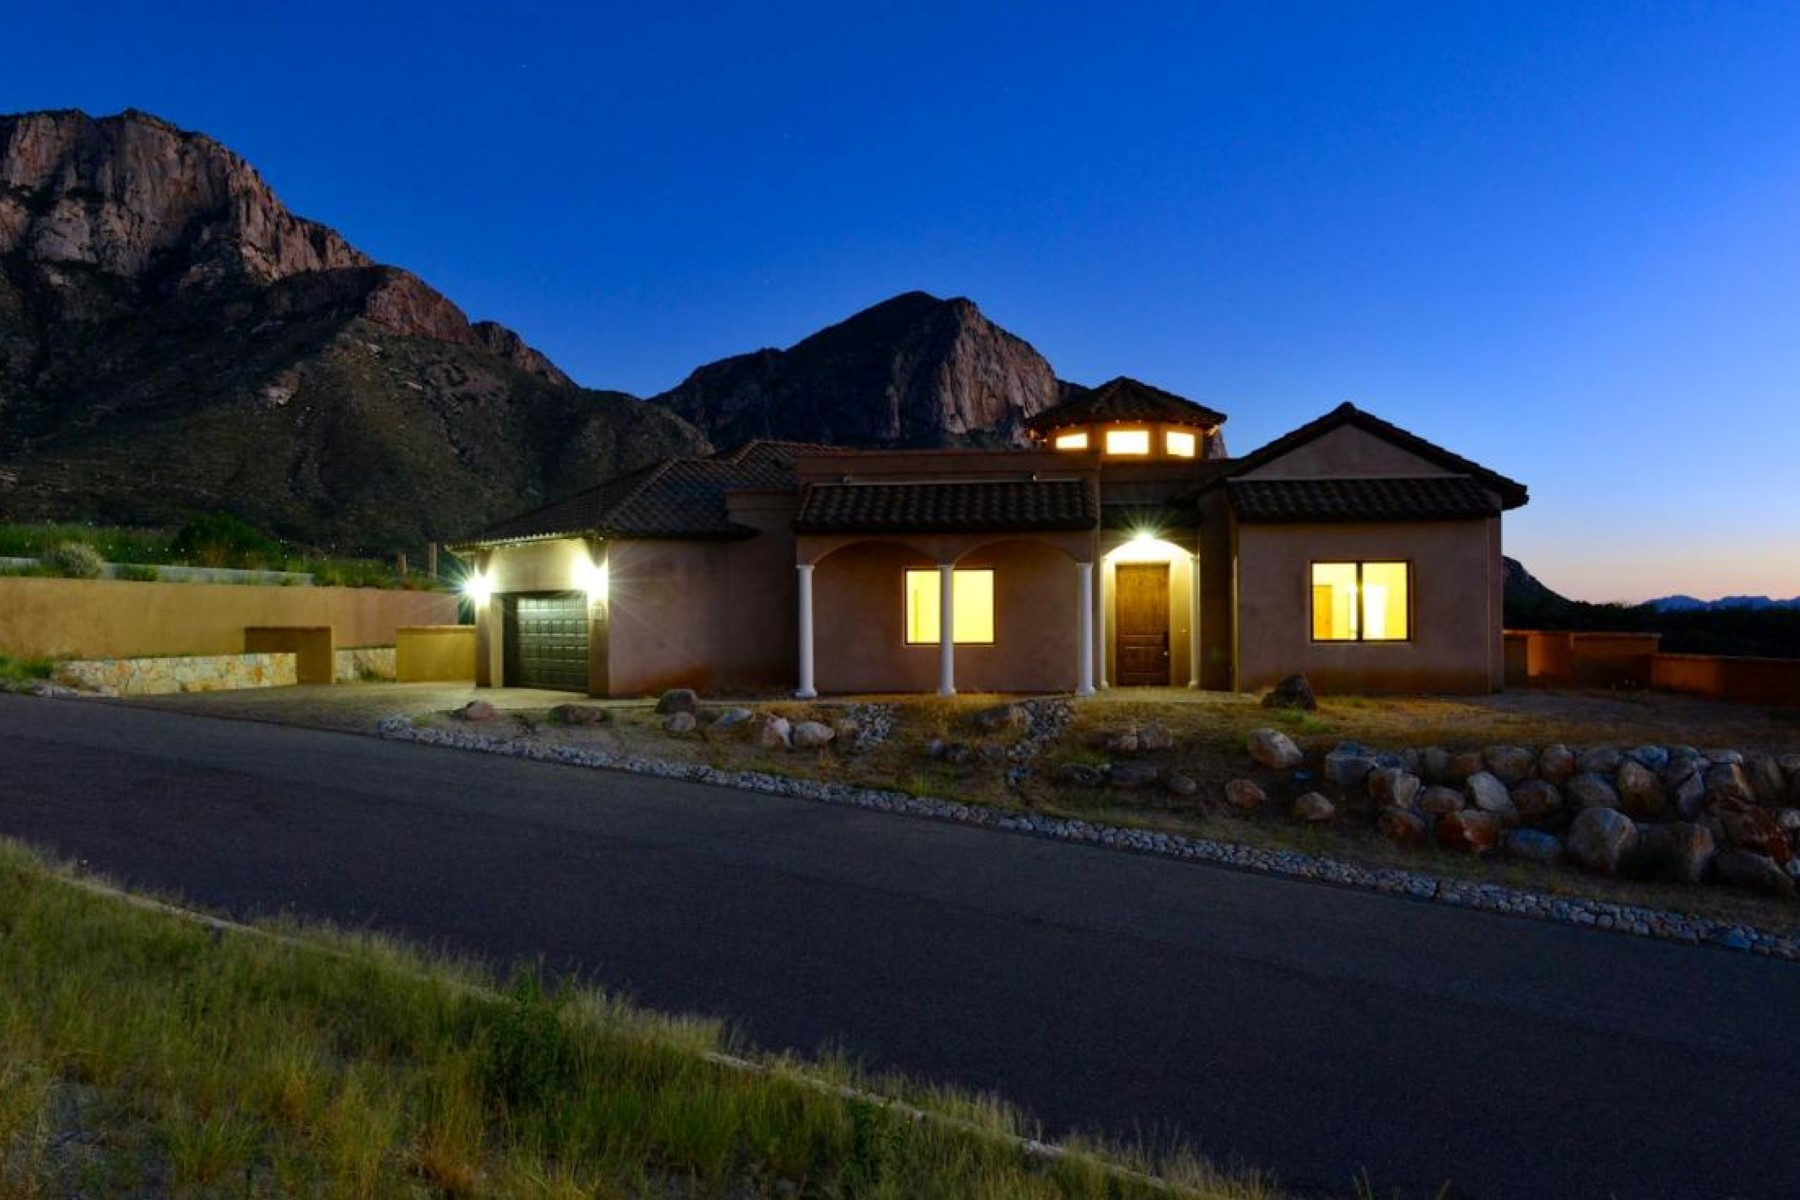 Property For Sale at Newly Constructed Home With Breathtaking Unobstructed Pusch Ridge Views